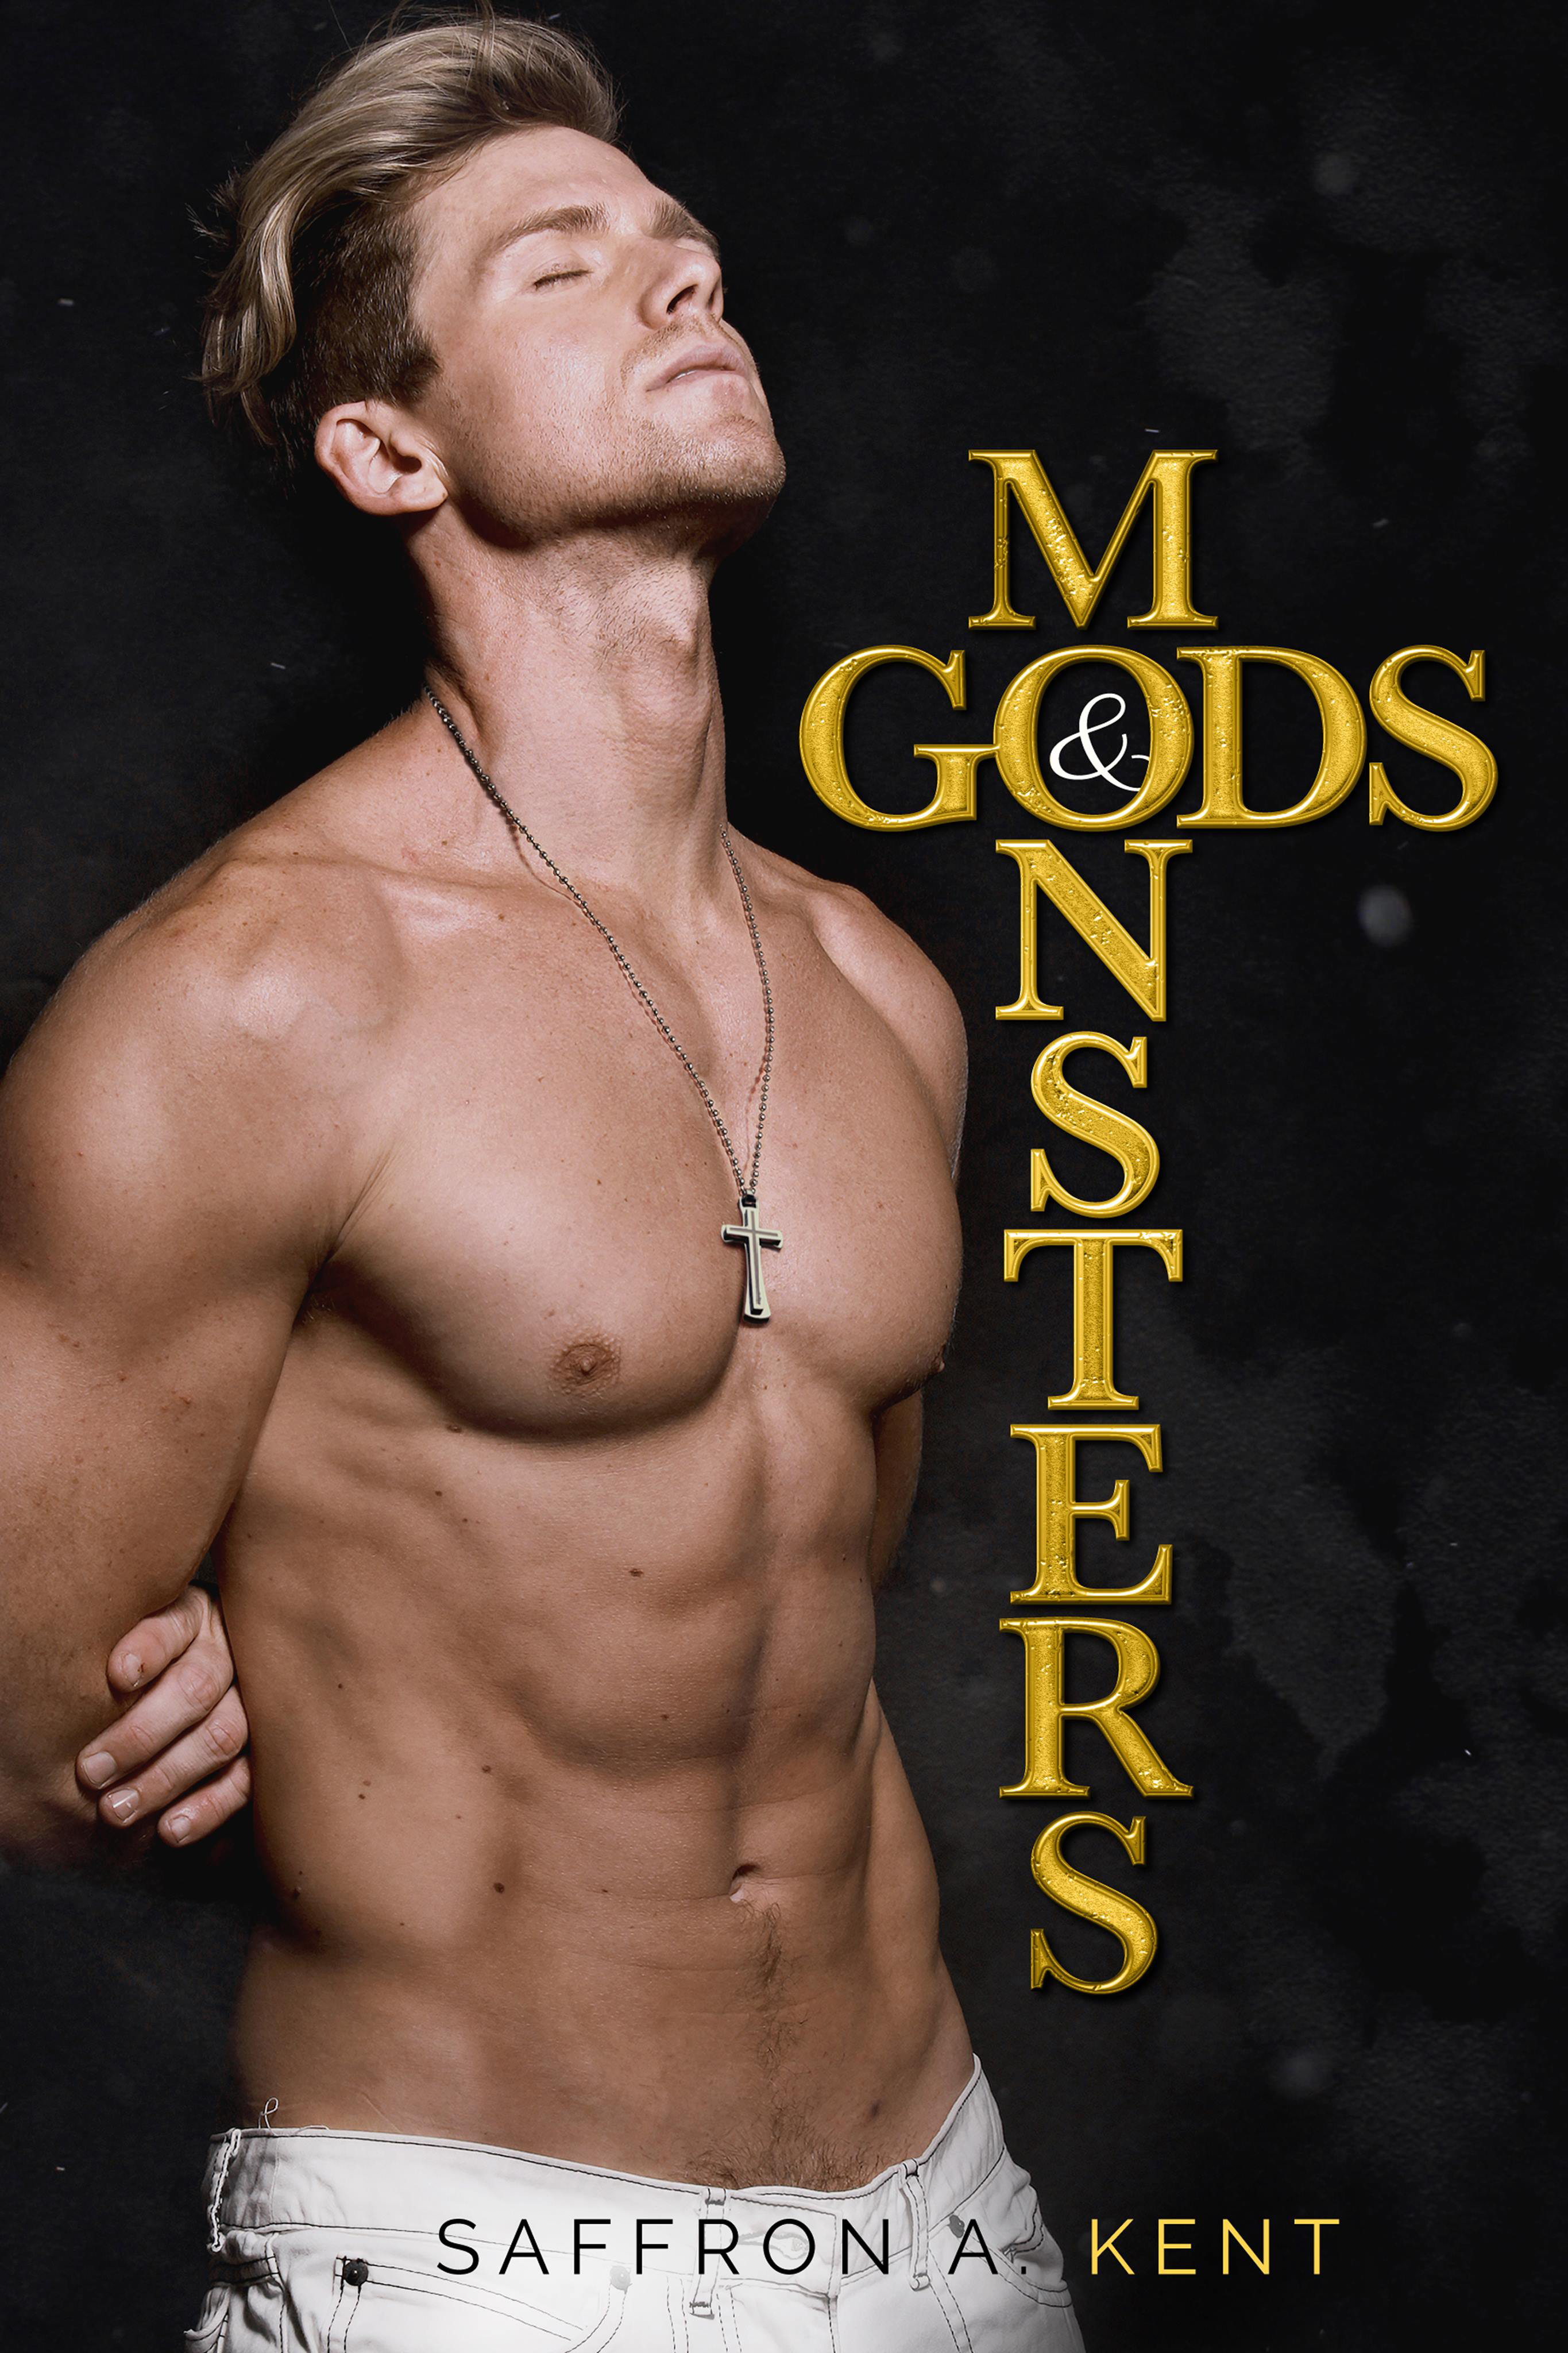 MONSTERS & GODS